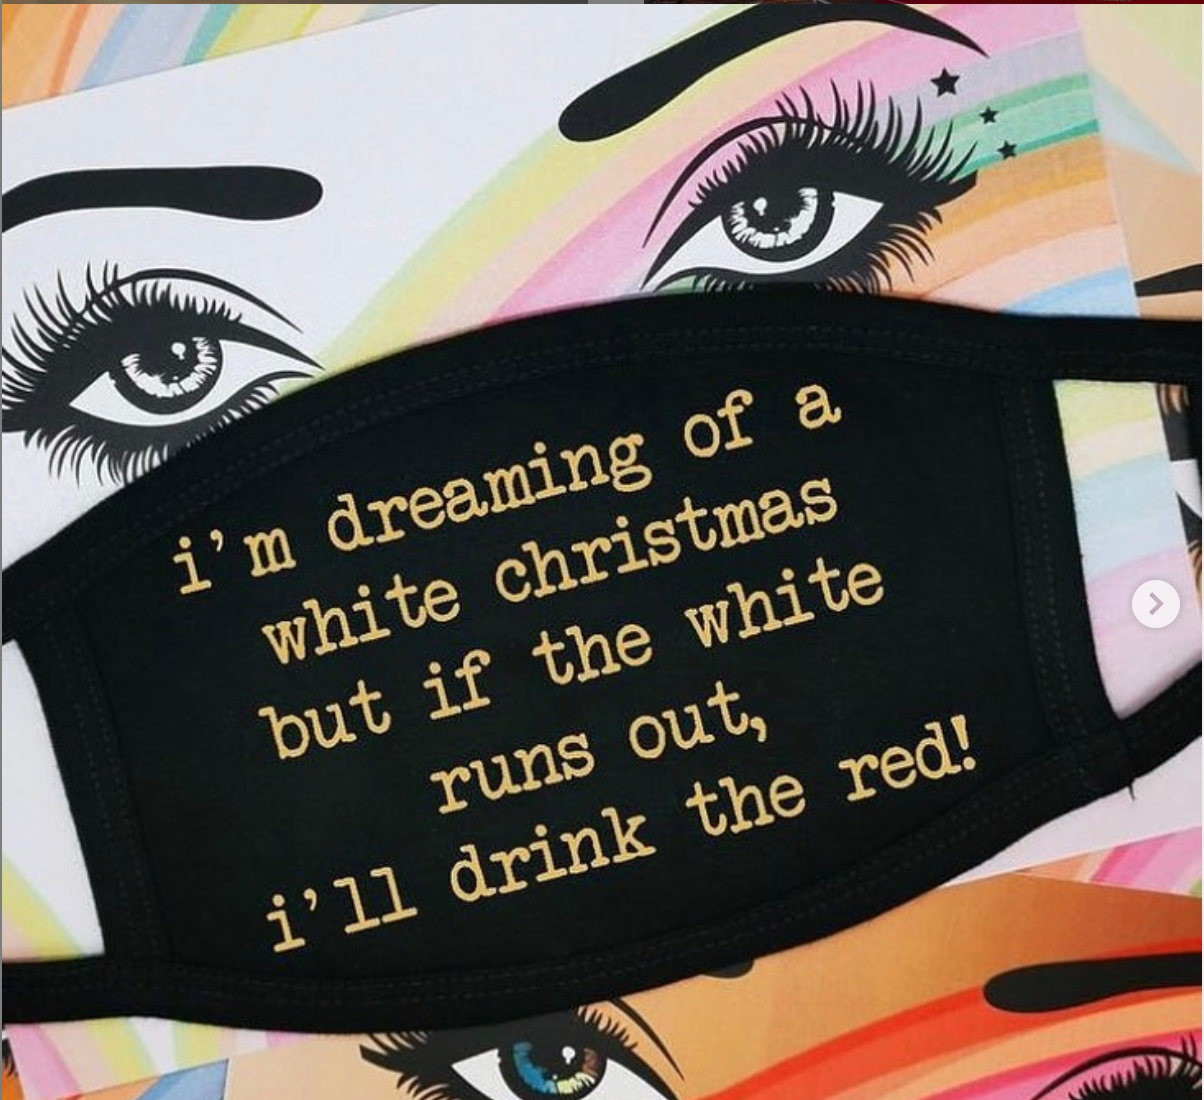 Above: One of the early posts on Box of Delights social media channels promoting its Christmas products, including these Five Dollar Shake face coverings.